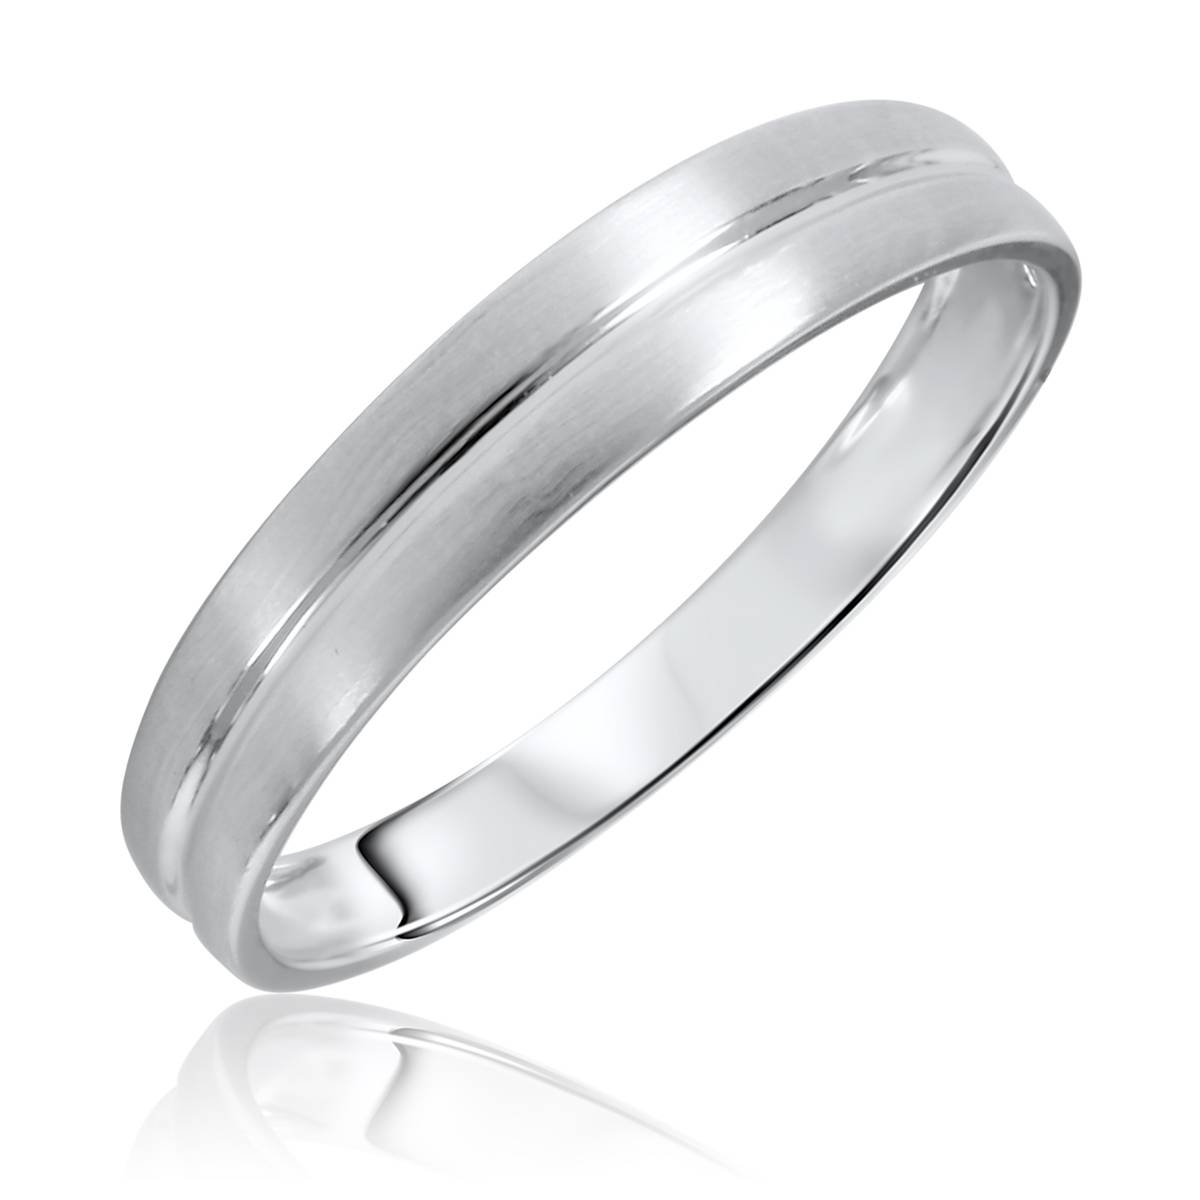 Mens Wedding Band 14K White Gold Within White Gold And Gold Wedding Bands (View 7 of 15)